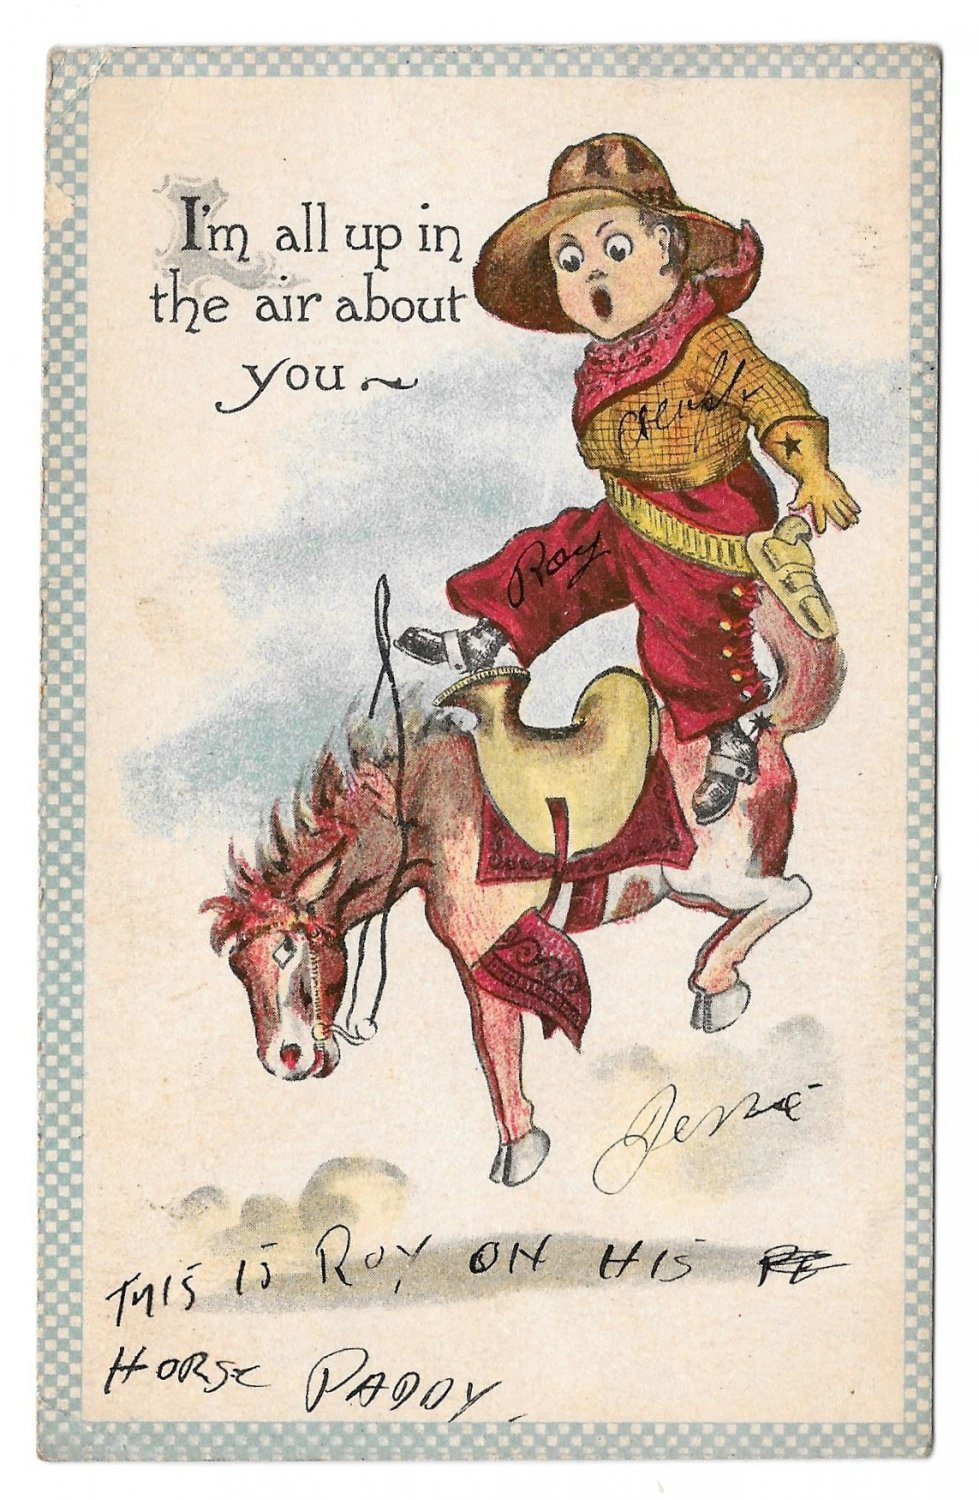 Little Cowboy Riding Bucking Horse I'm All Up the air about you Samson Bros Vintage Postcard